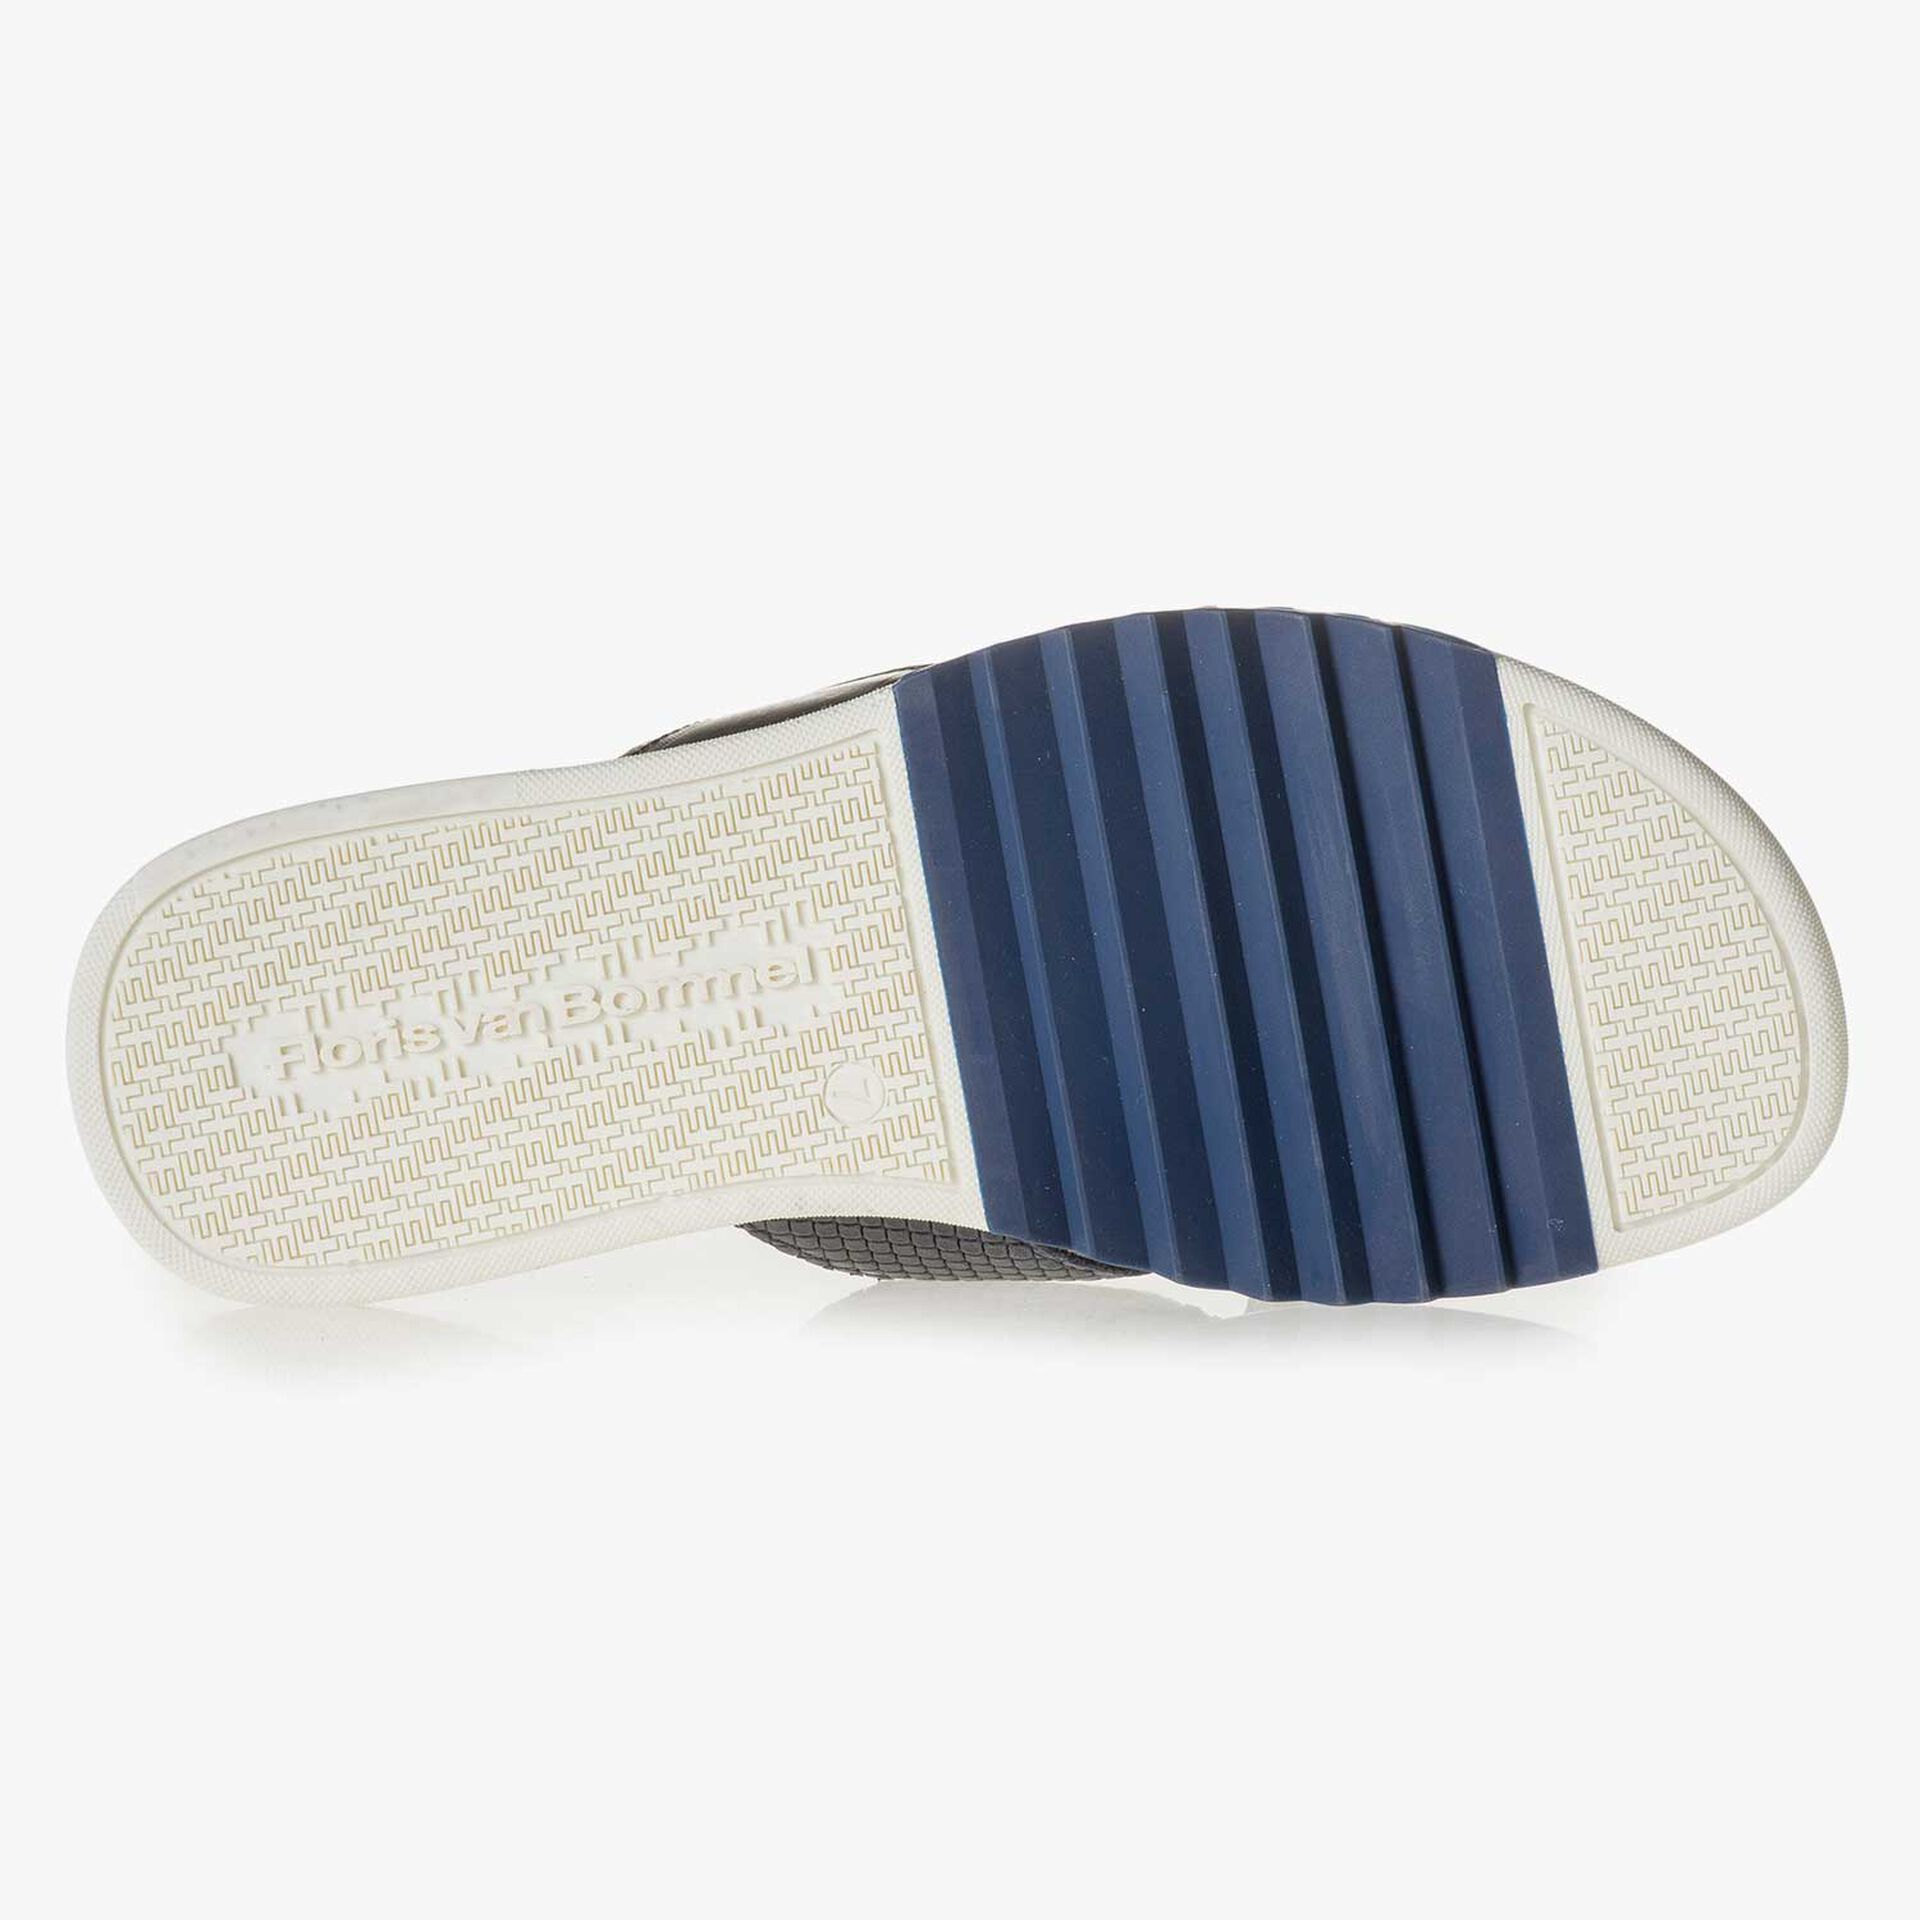 Blue printed leather slipper